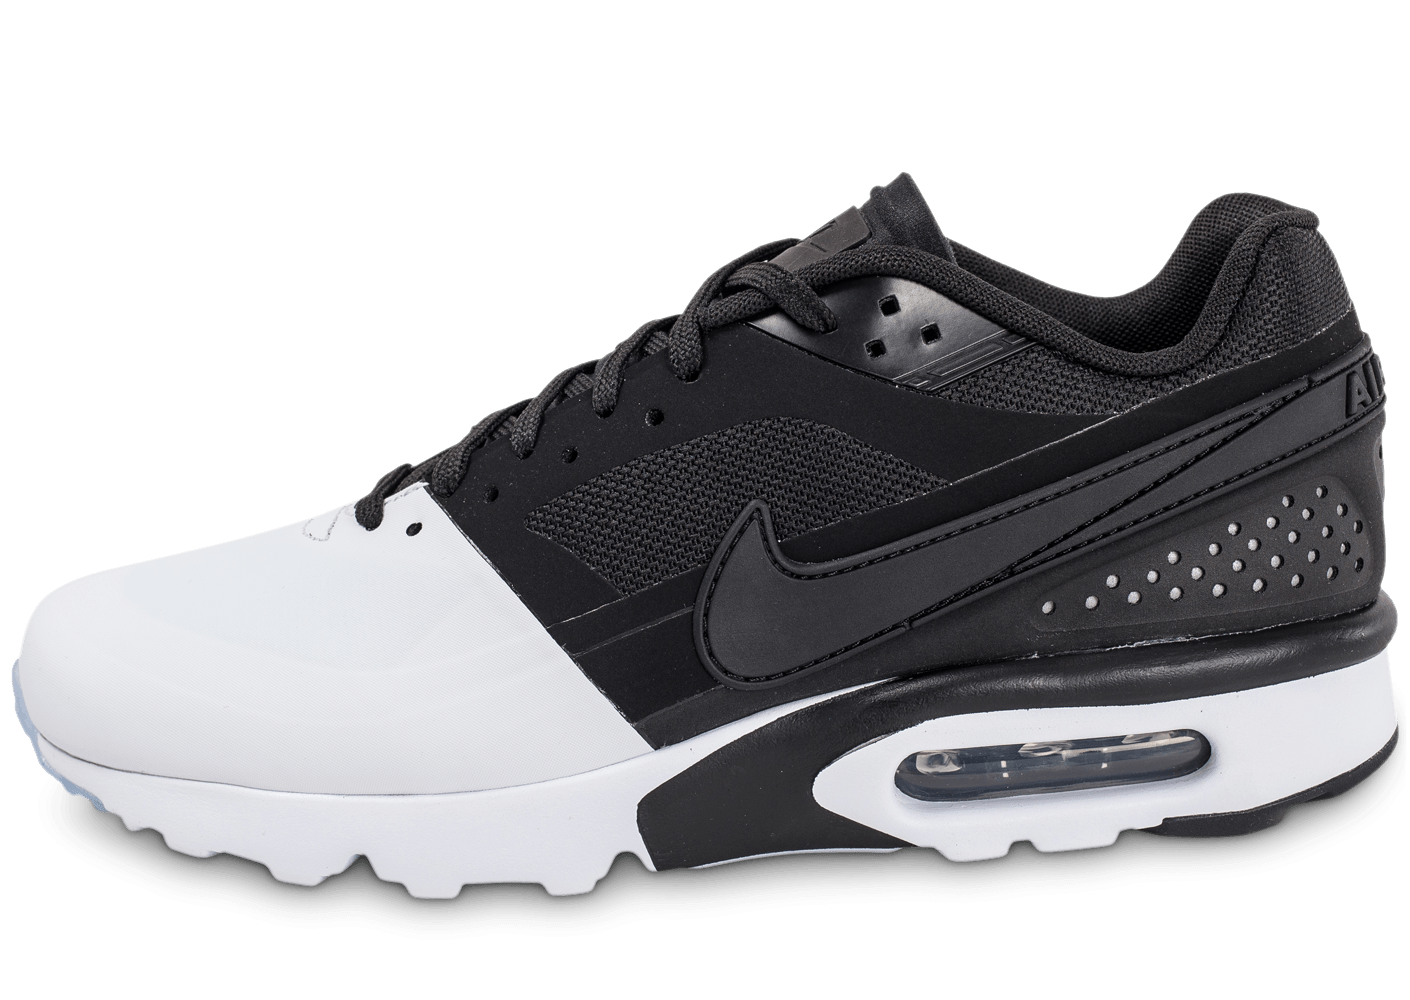 Nike Air Max BW Ultra SE noire et blanche - Chaussures ...